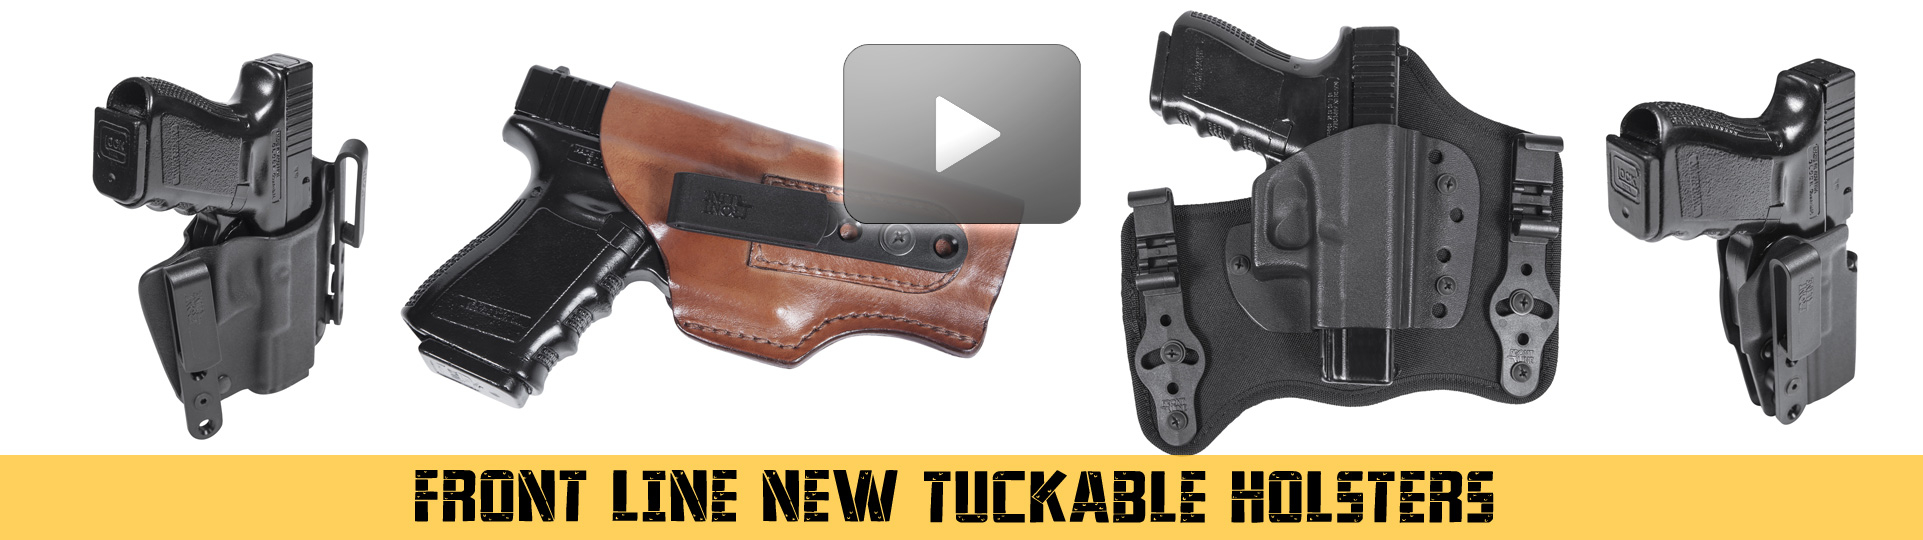 New Front Line Tuckable Holsters